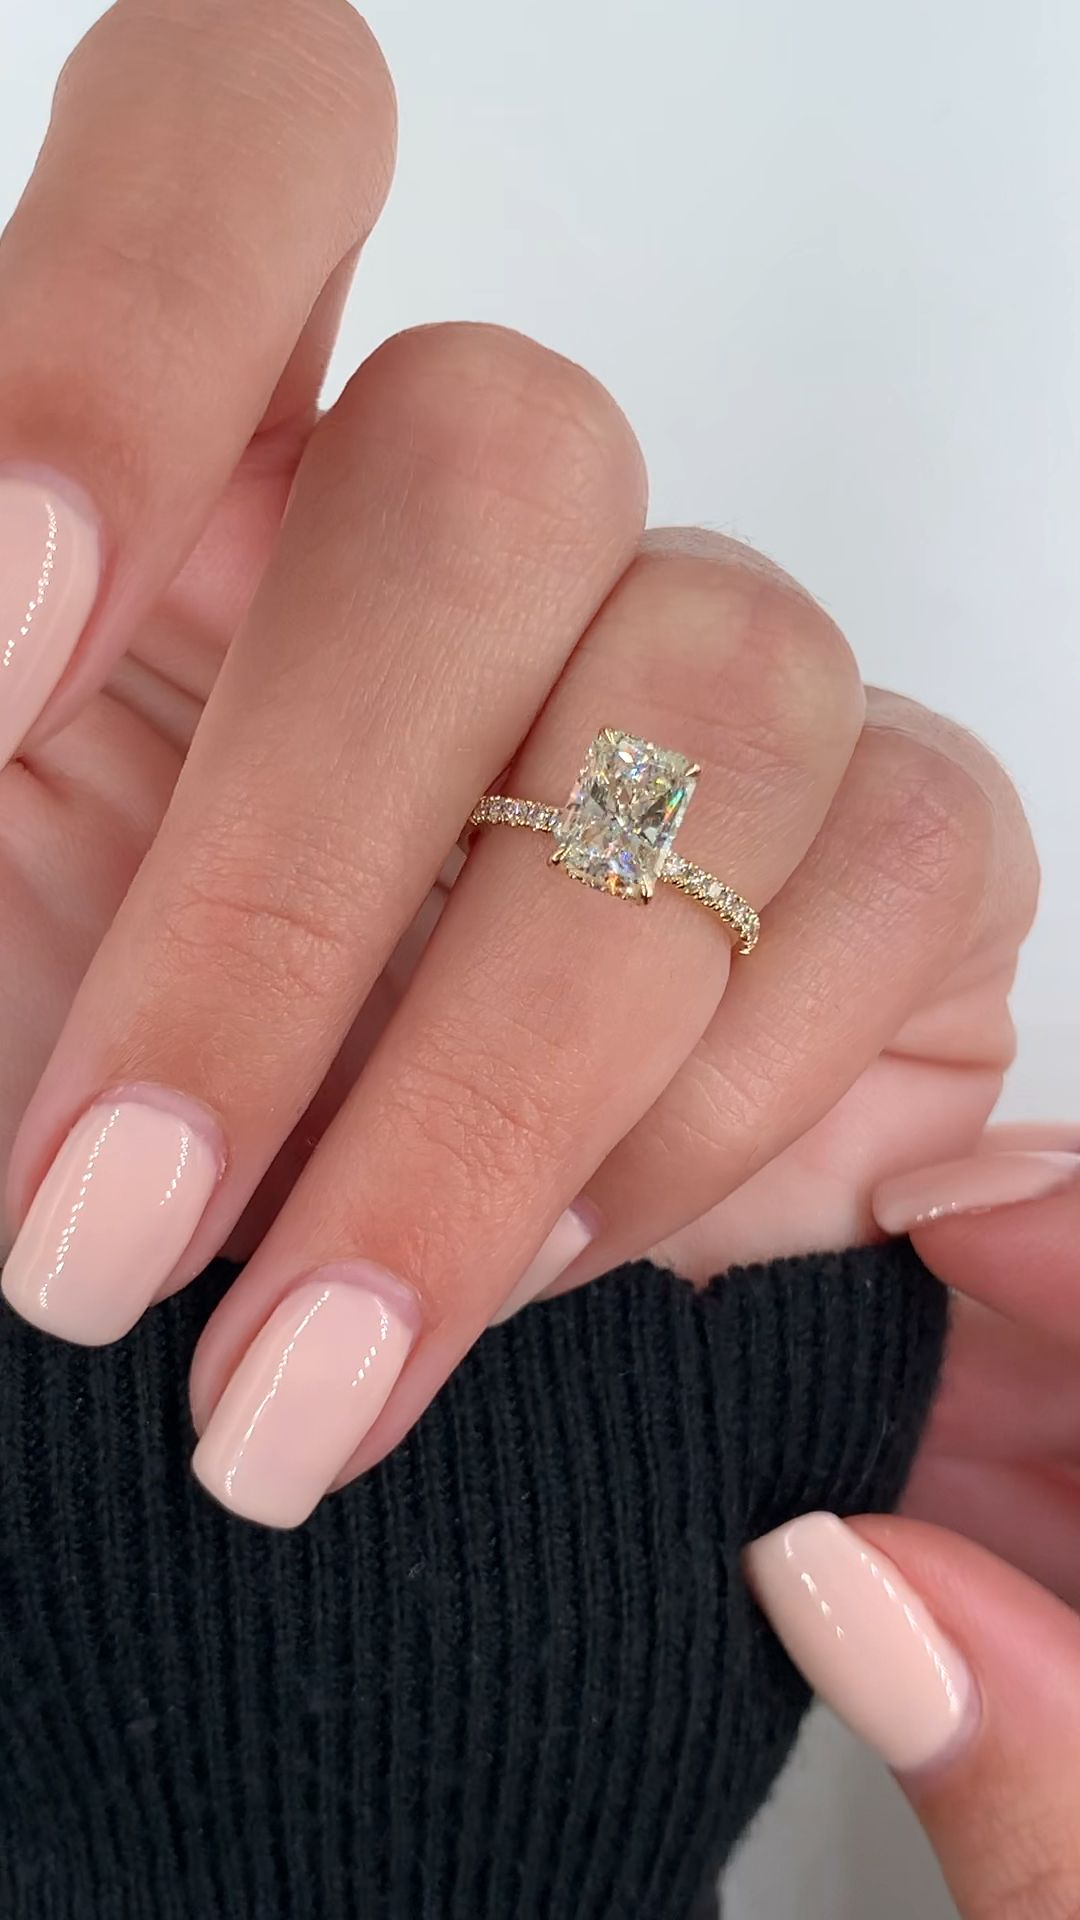 Photo of Gorgeous radiant cut engagement ring